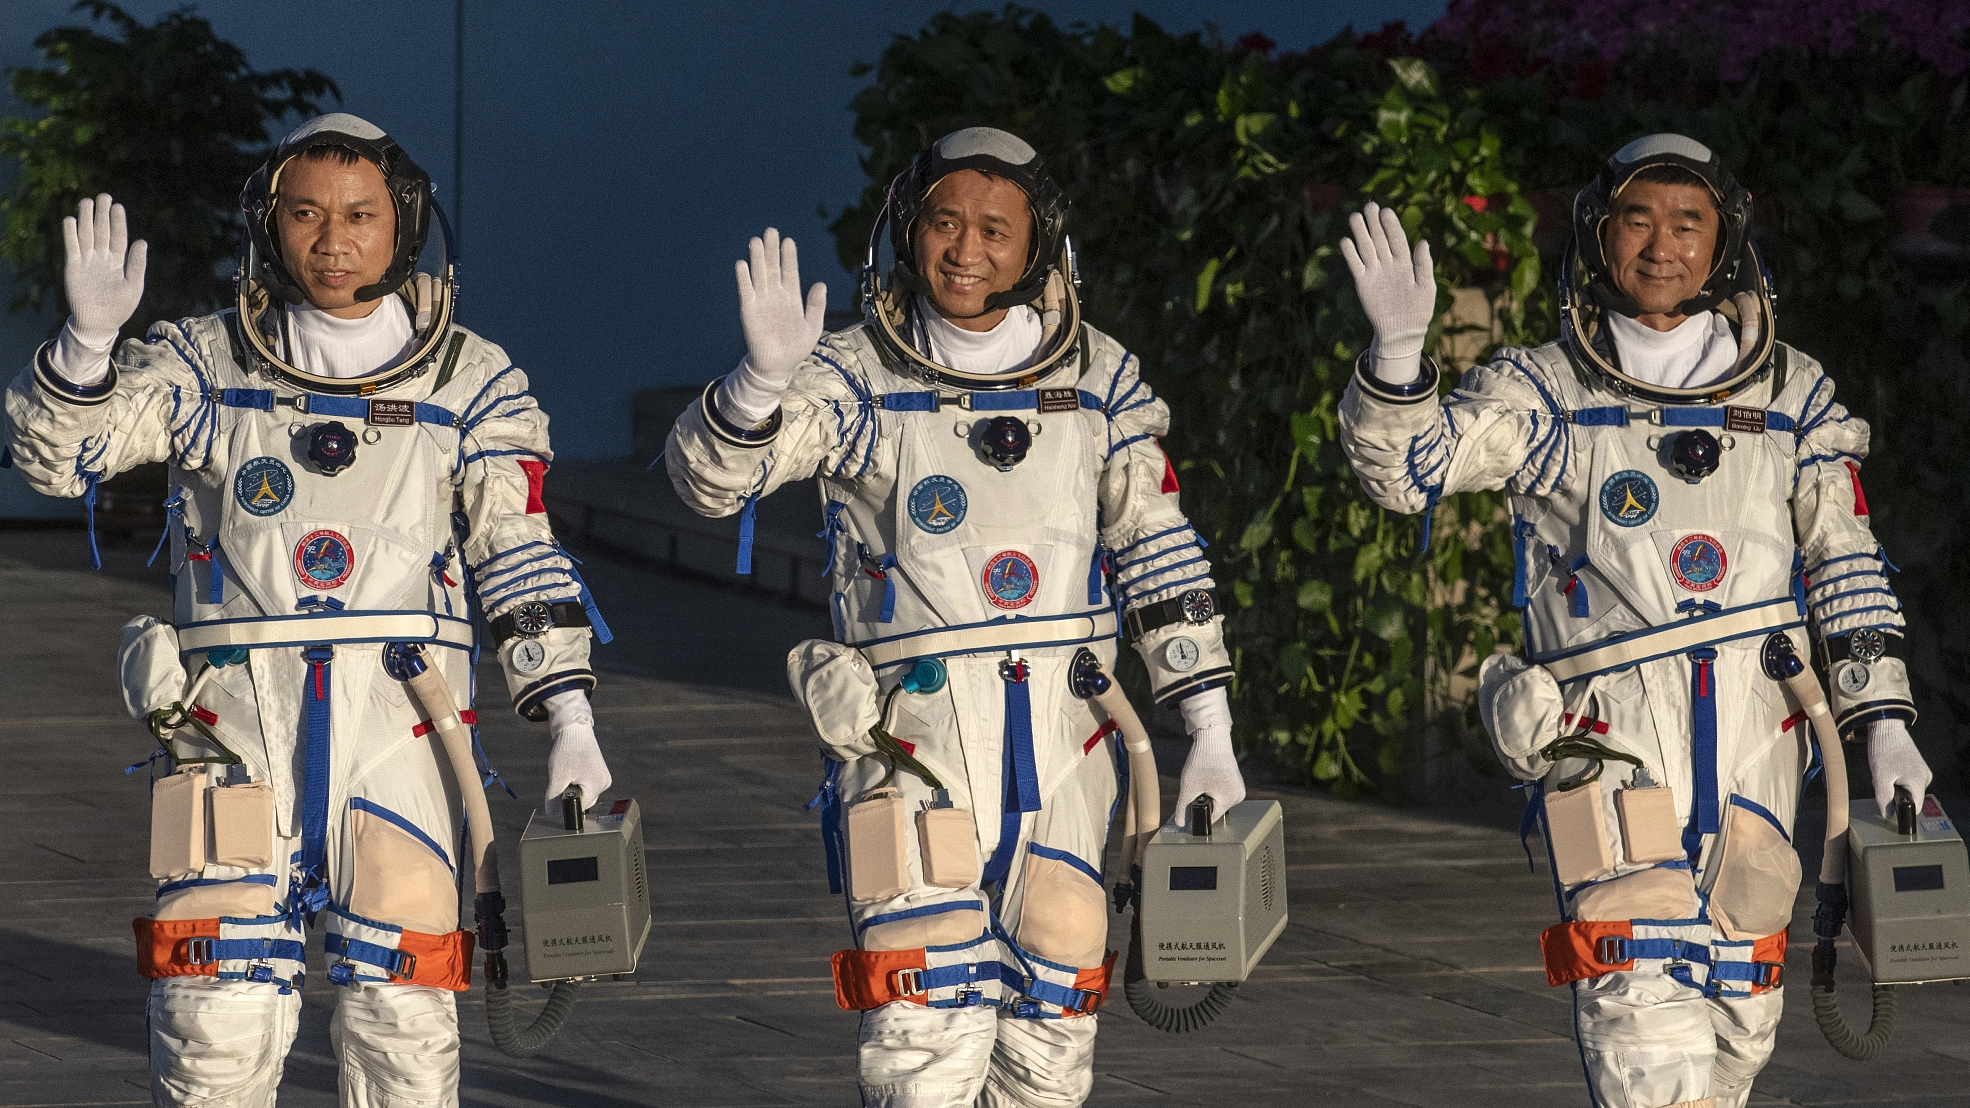 - 64c42d6022e44dc6917329c5f60fba49 - A month in China Space Station: What's been done so far?